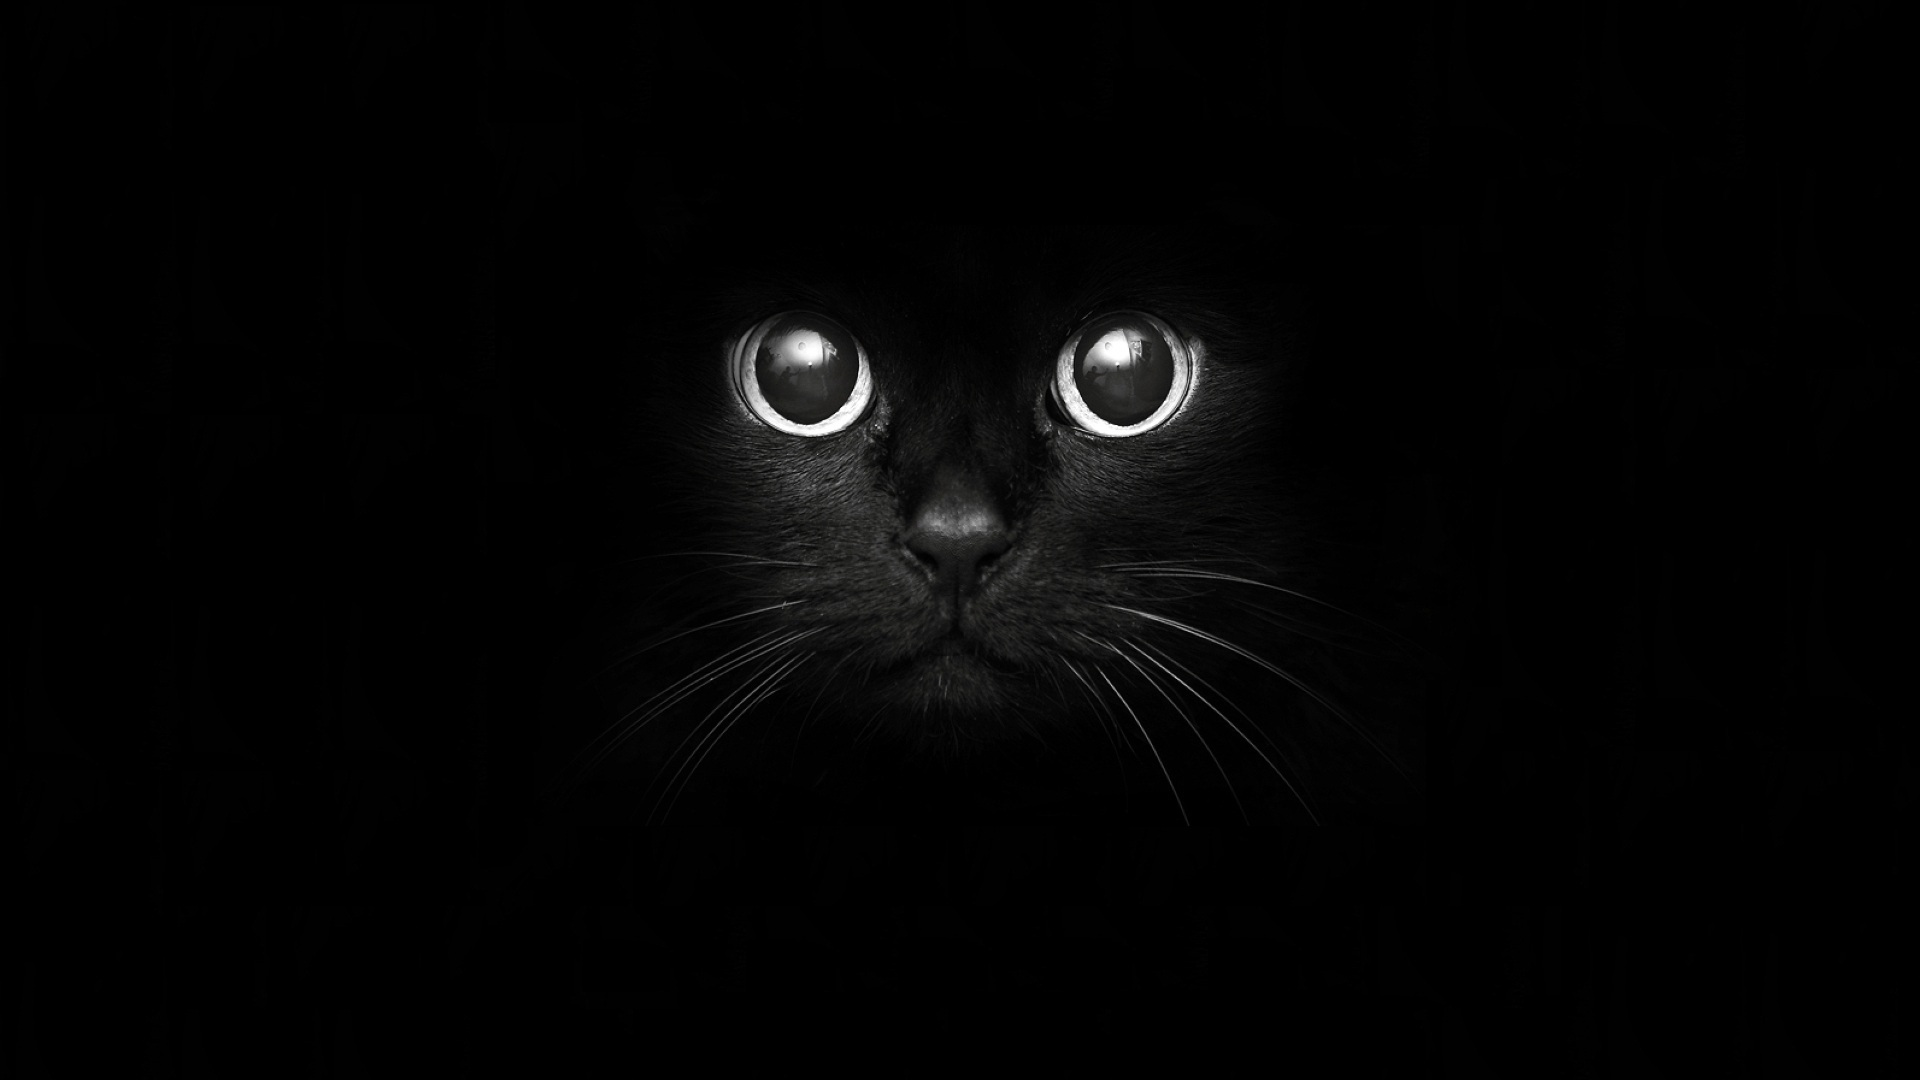 cat picture 1920x1080 with tagme breed solo whiskers highres black hair black nose large pupils wide